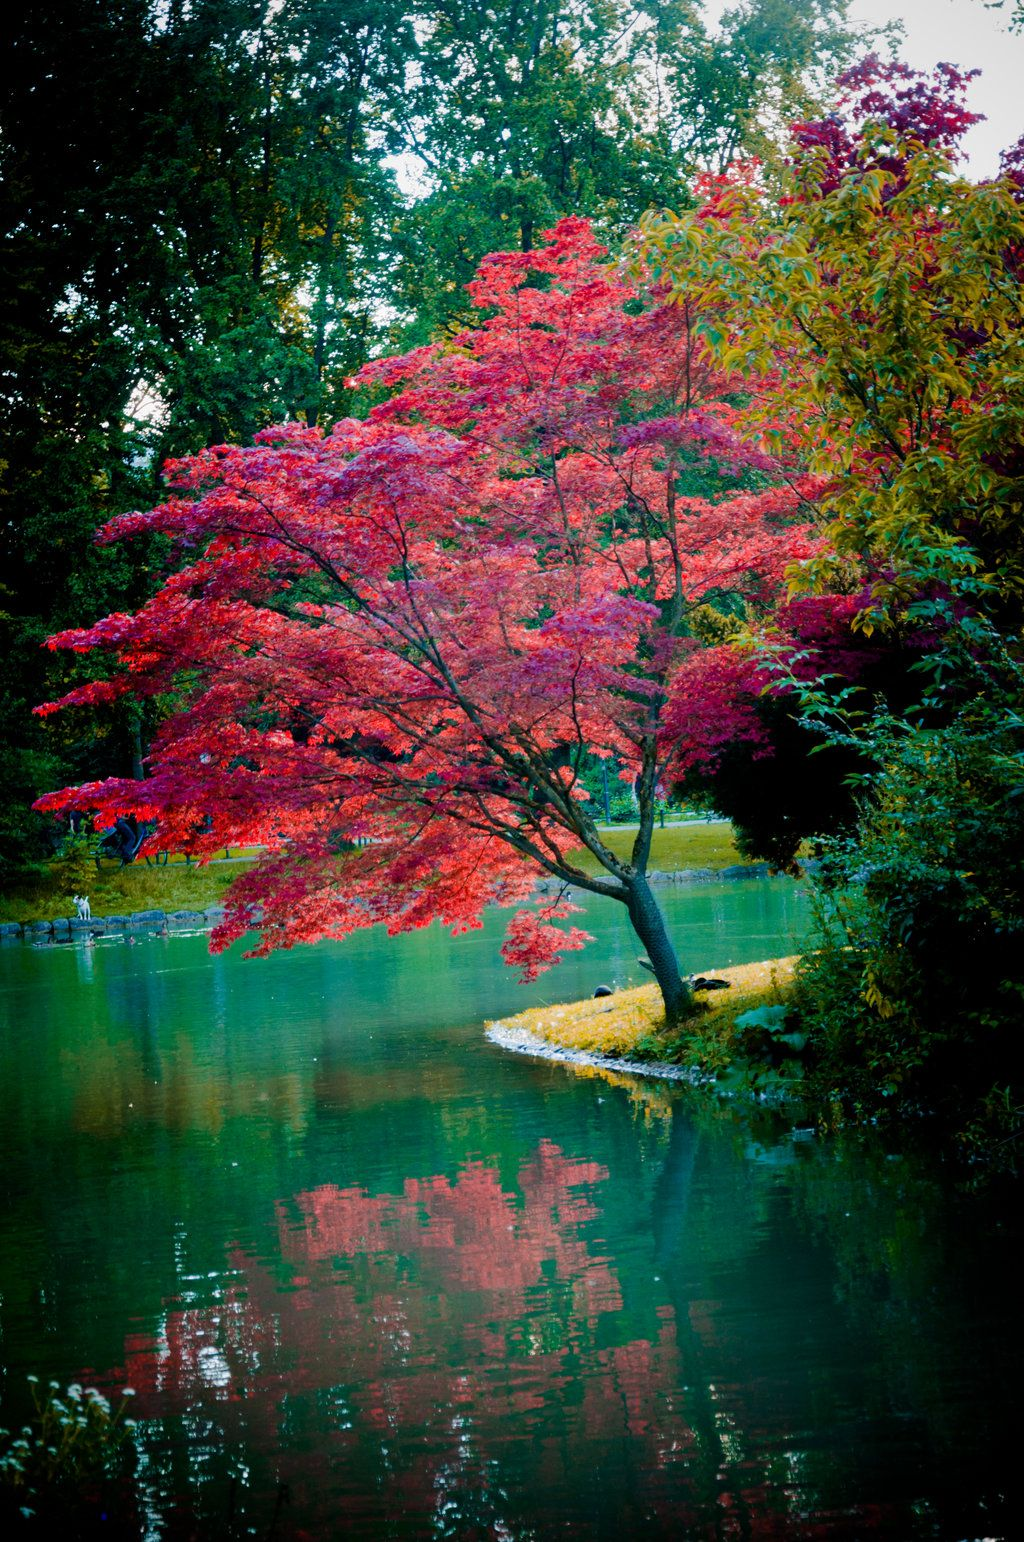 Trees│Árboles - #Trees | arboles | Pinterest | Red tree, Munich and ...